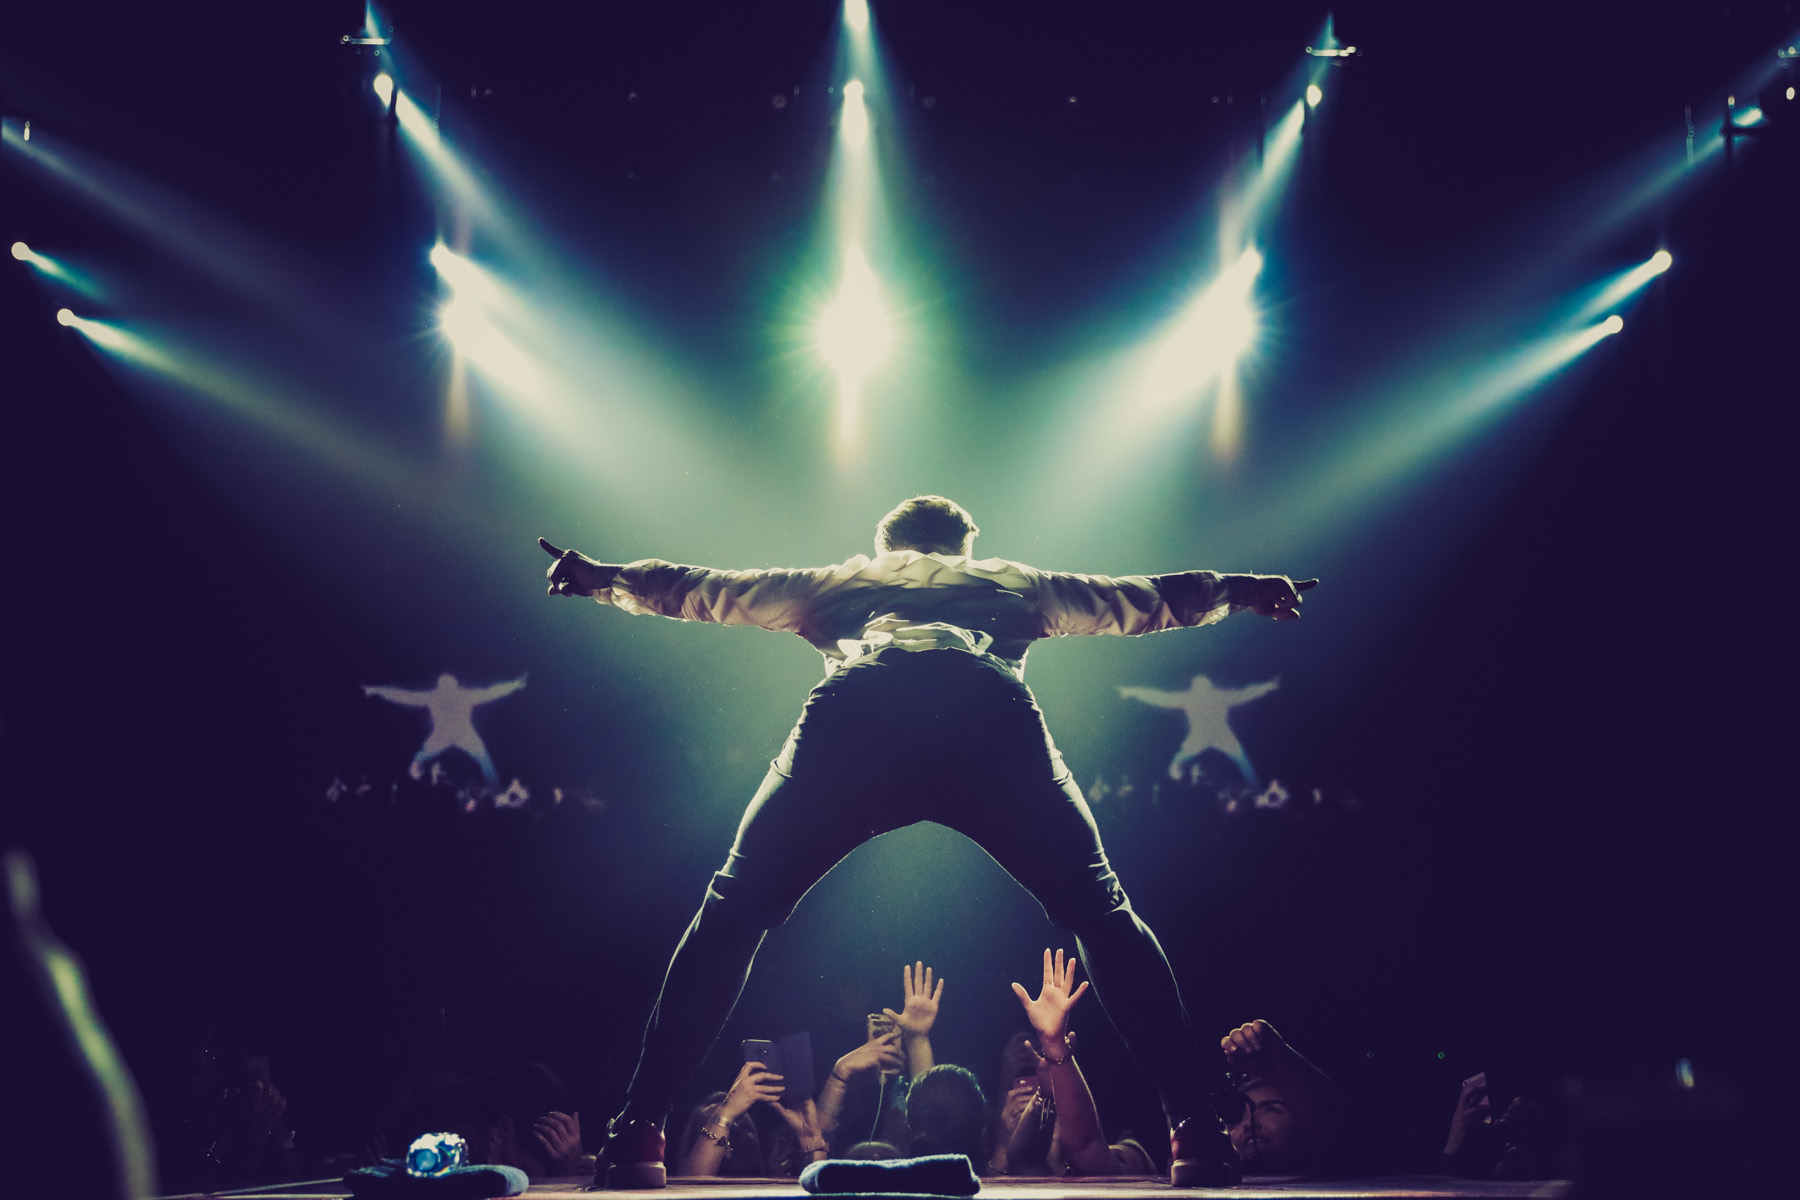 Olly Murs at the O2 by Christie Goodwin